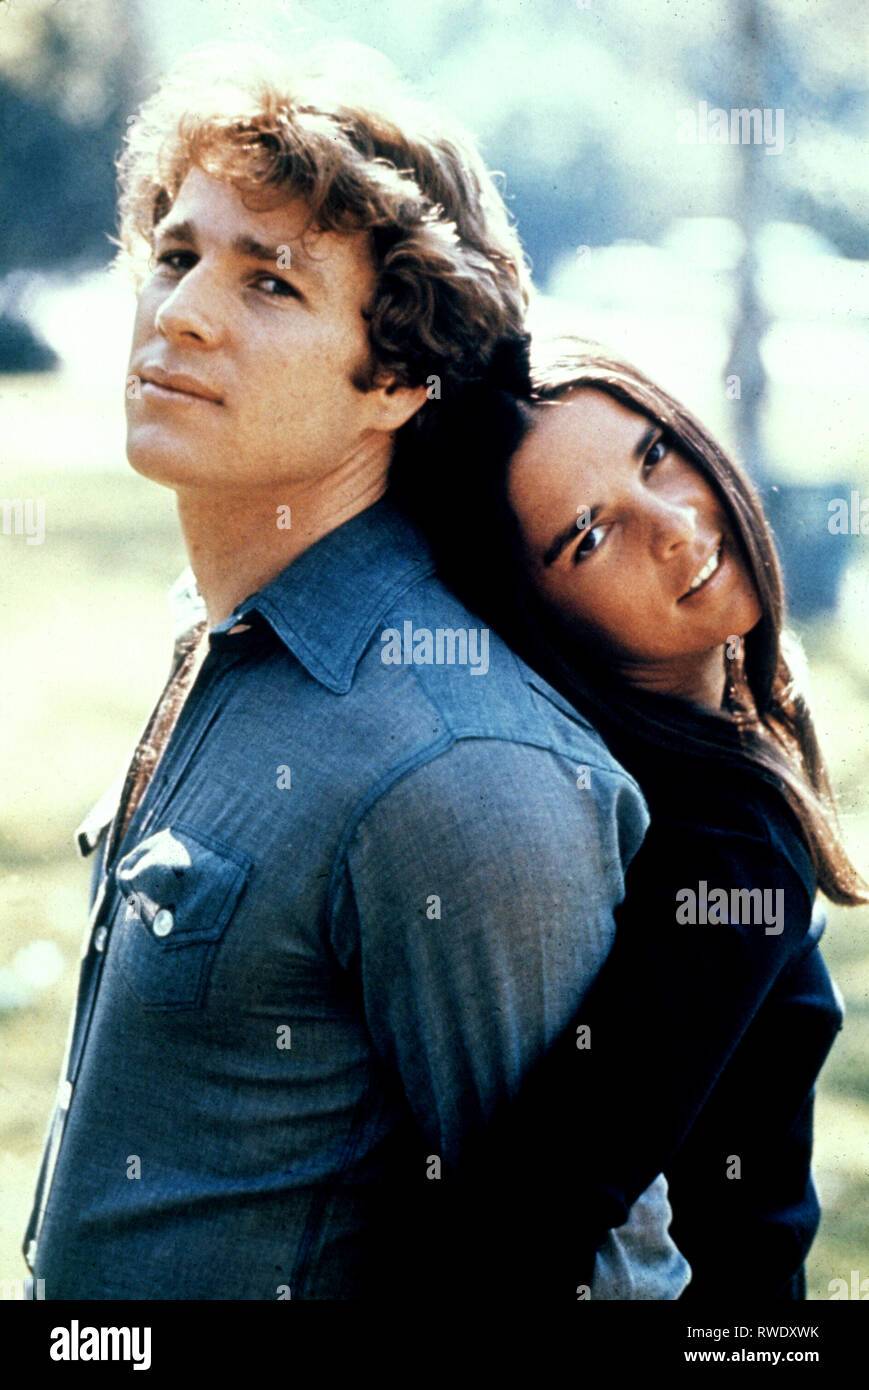 O'NEAL,MACGRAW, LOVE STORY, 1970 - Stock Image